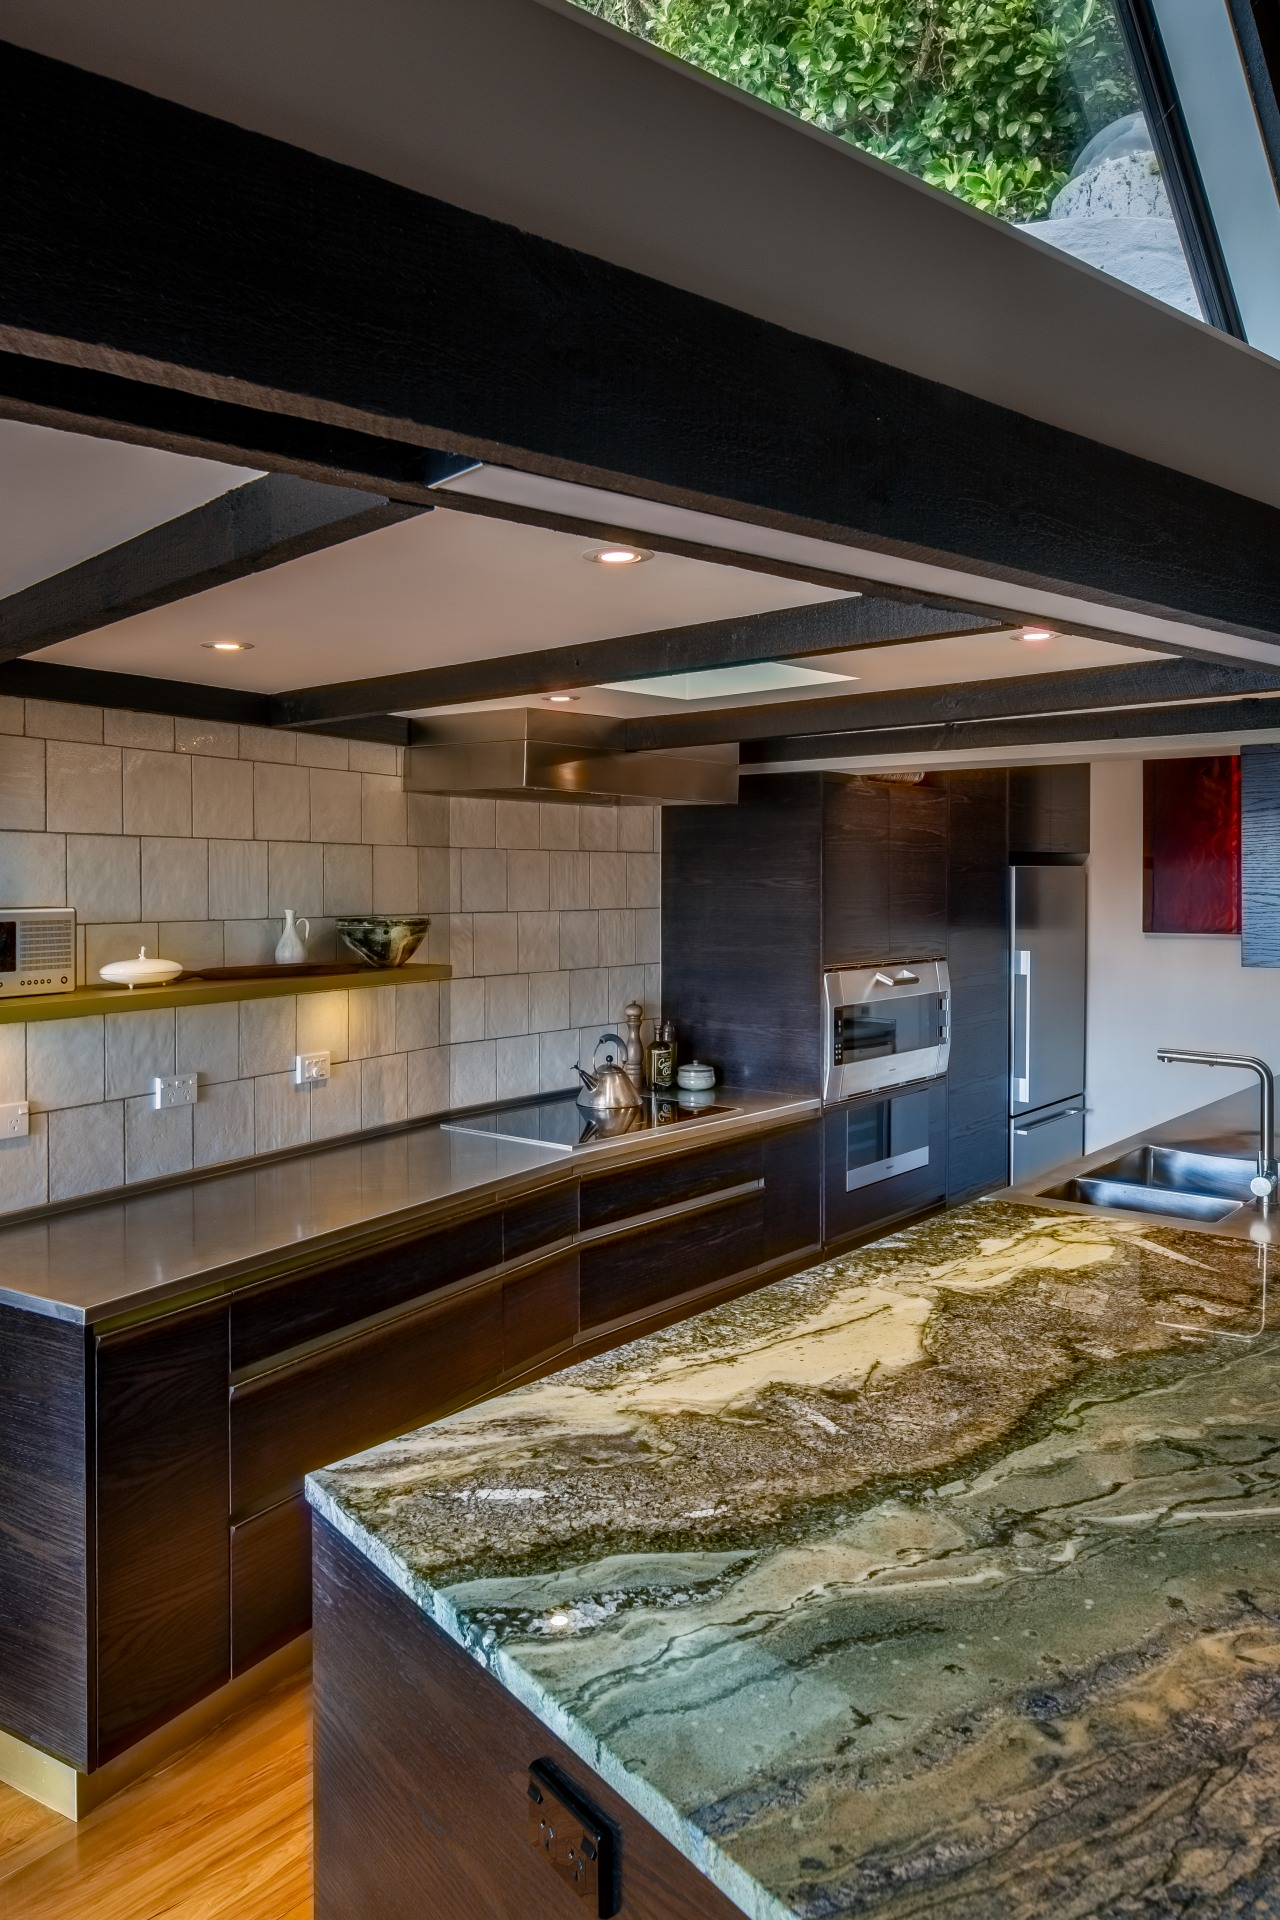 A slab of exquisite hand picked granite forms